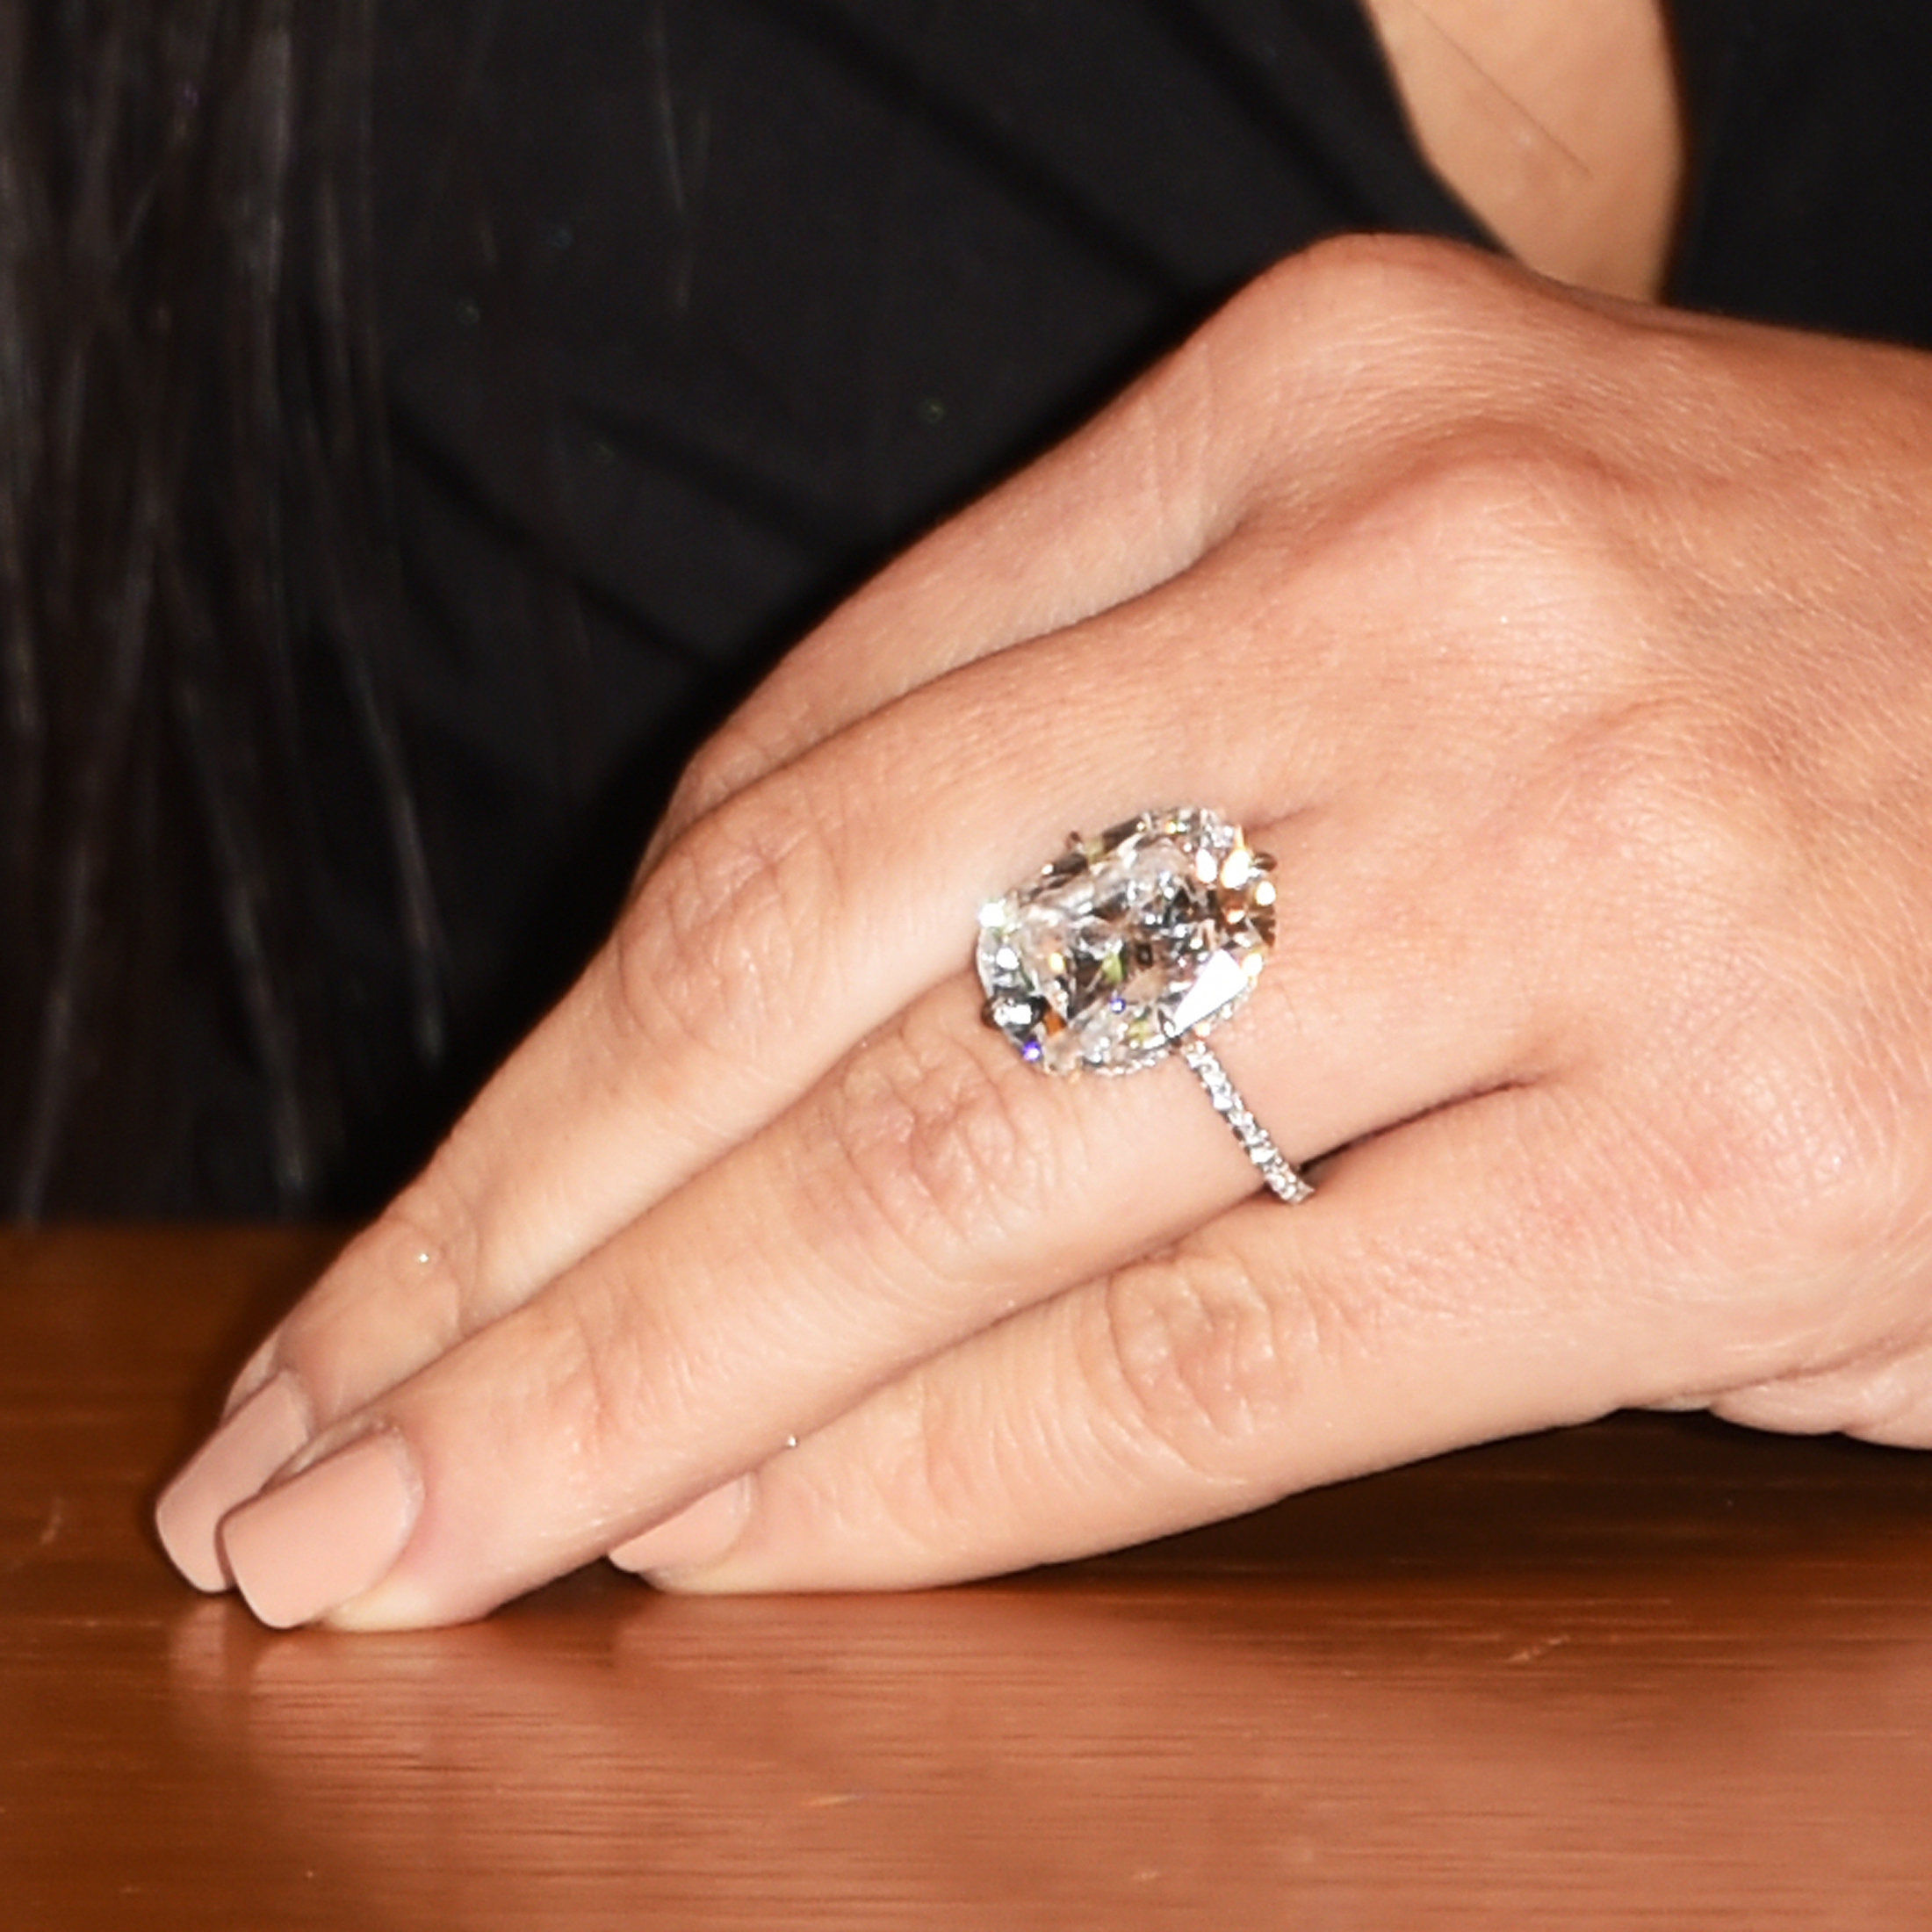 Kim Kardashian West - engagement ring - May 7, 2015